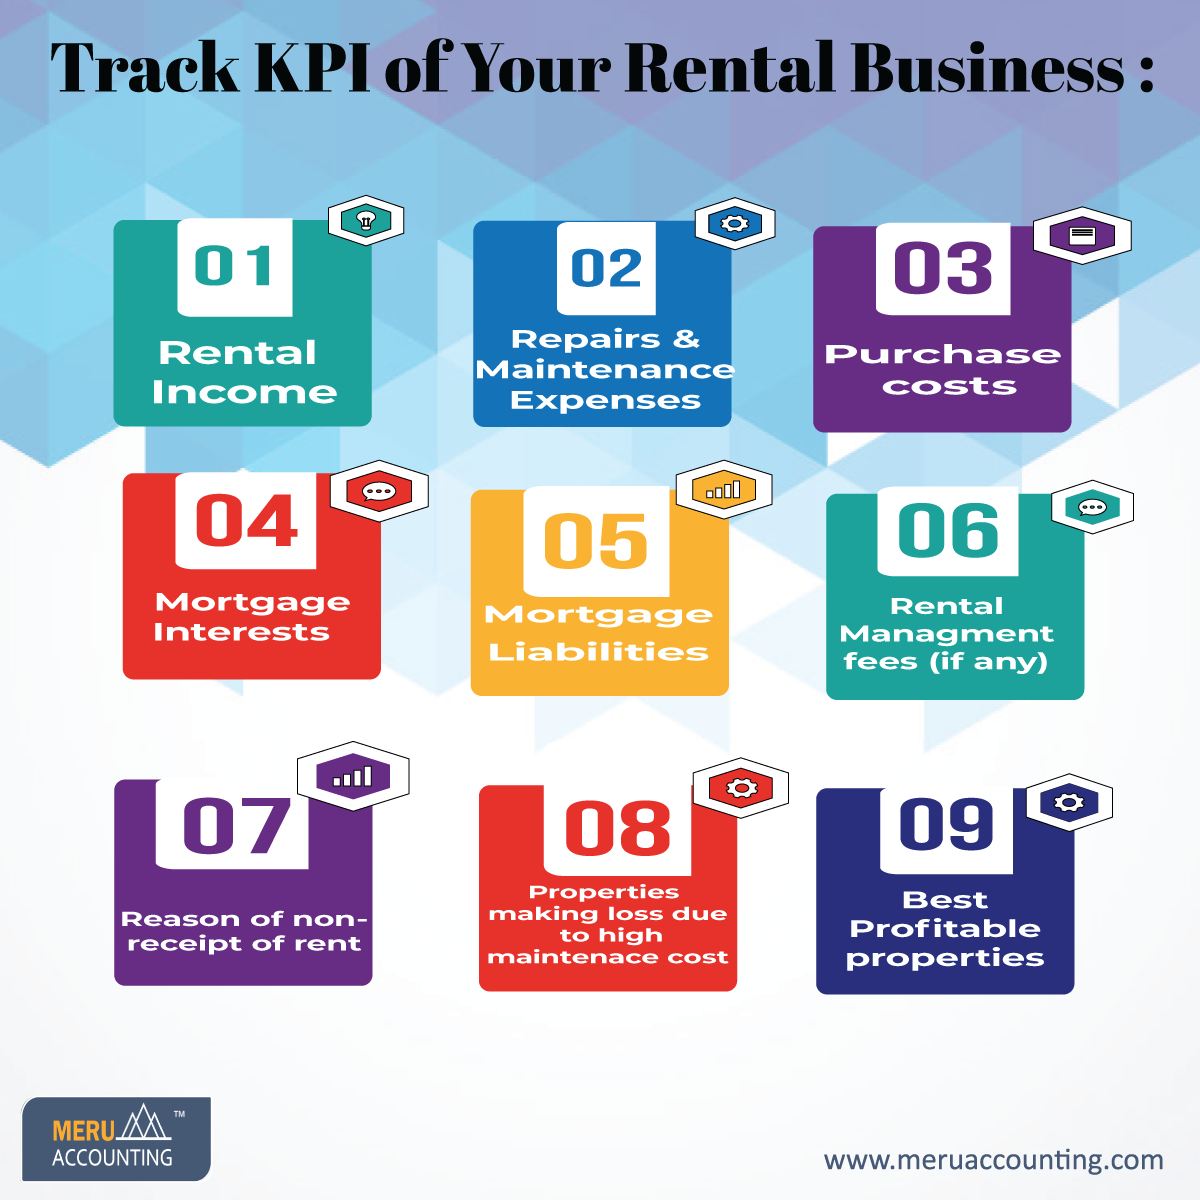 Rental properties KPI